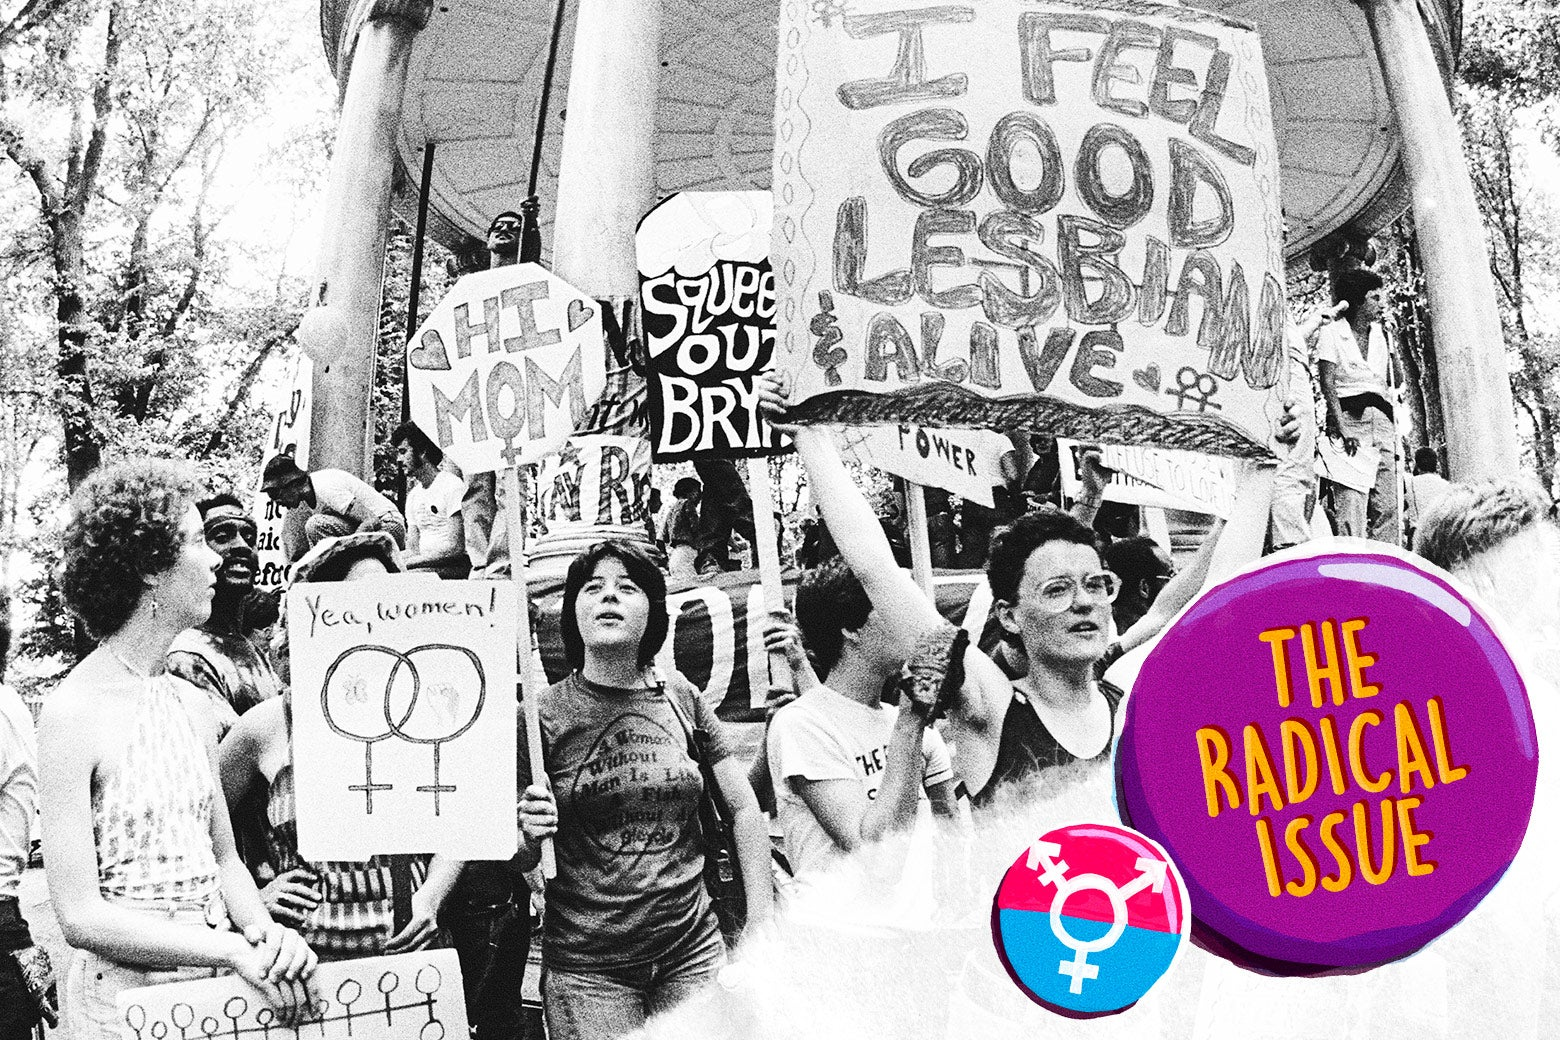 """Lesbian rights activists carry signs with slogans such as """"Yes, women!"""" and """"I feel good, lesbian, and alive"""" with two Venus symbols."""